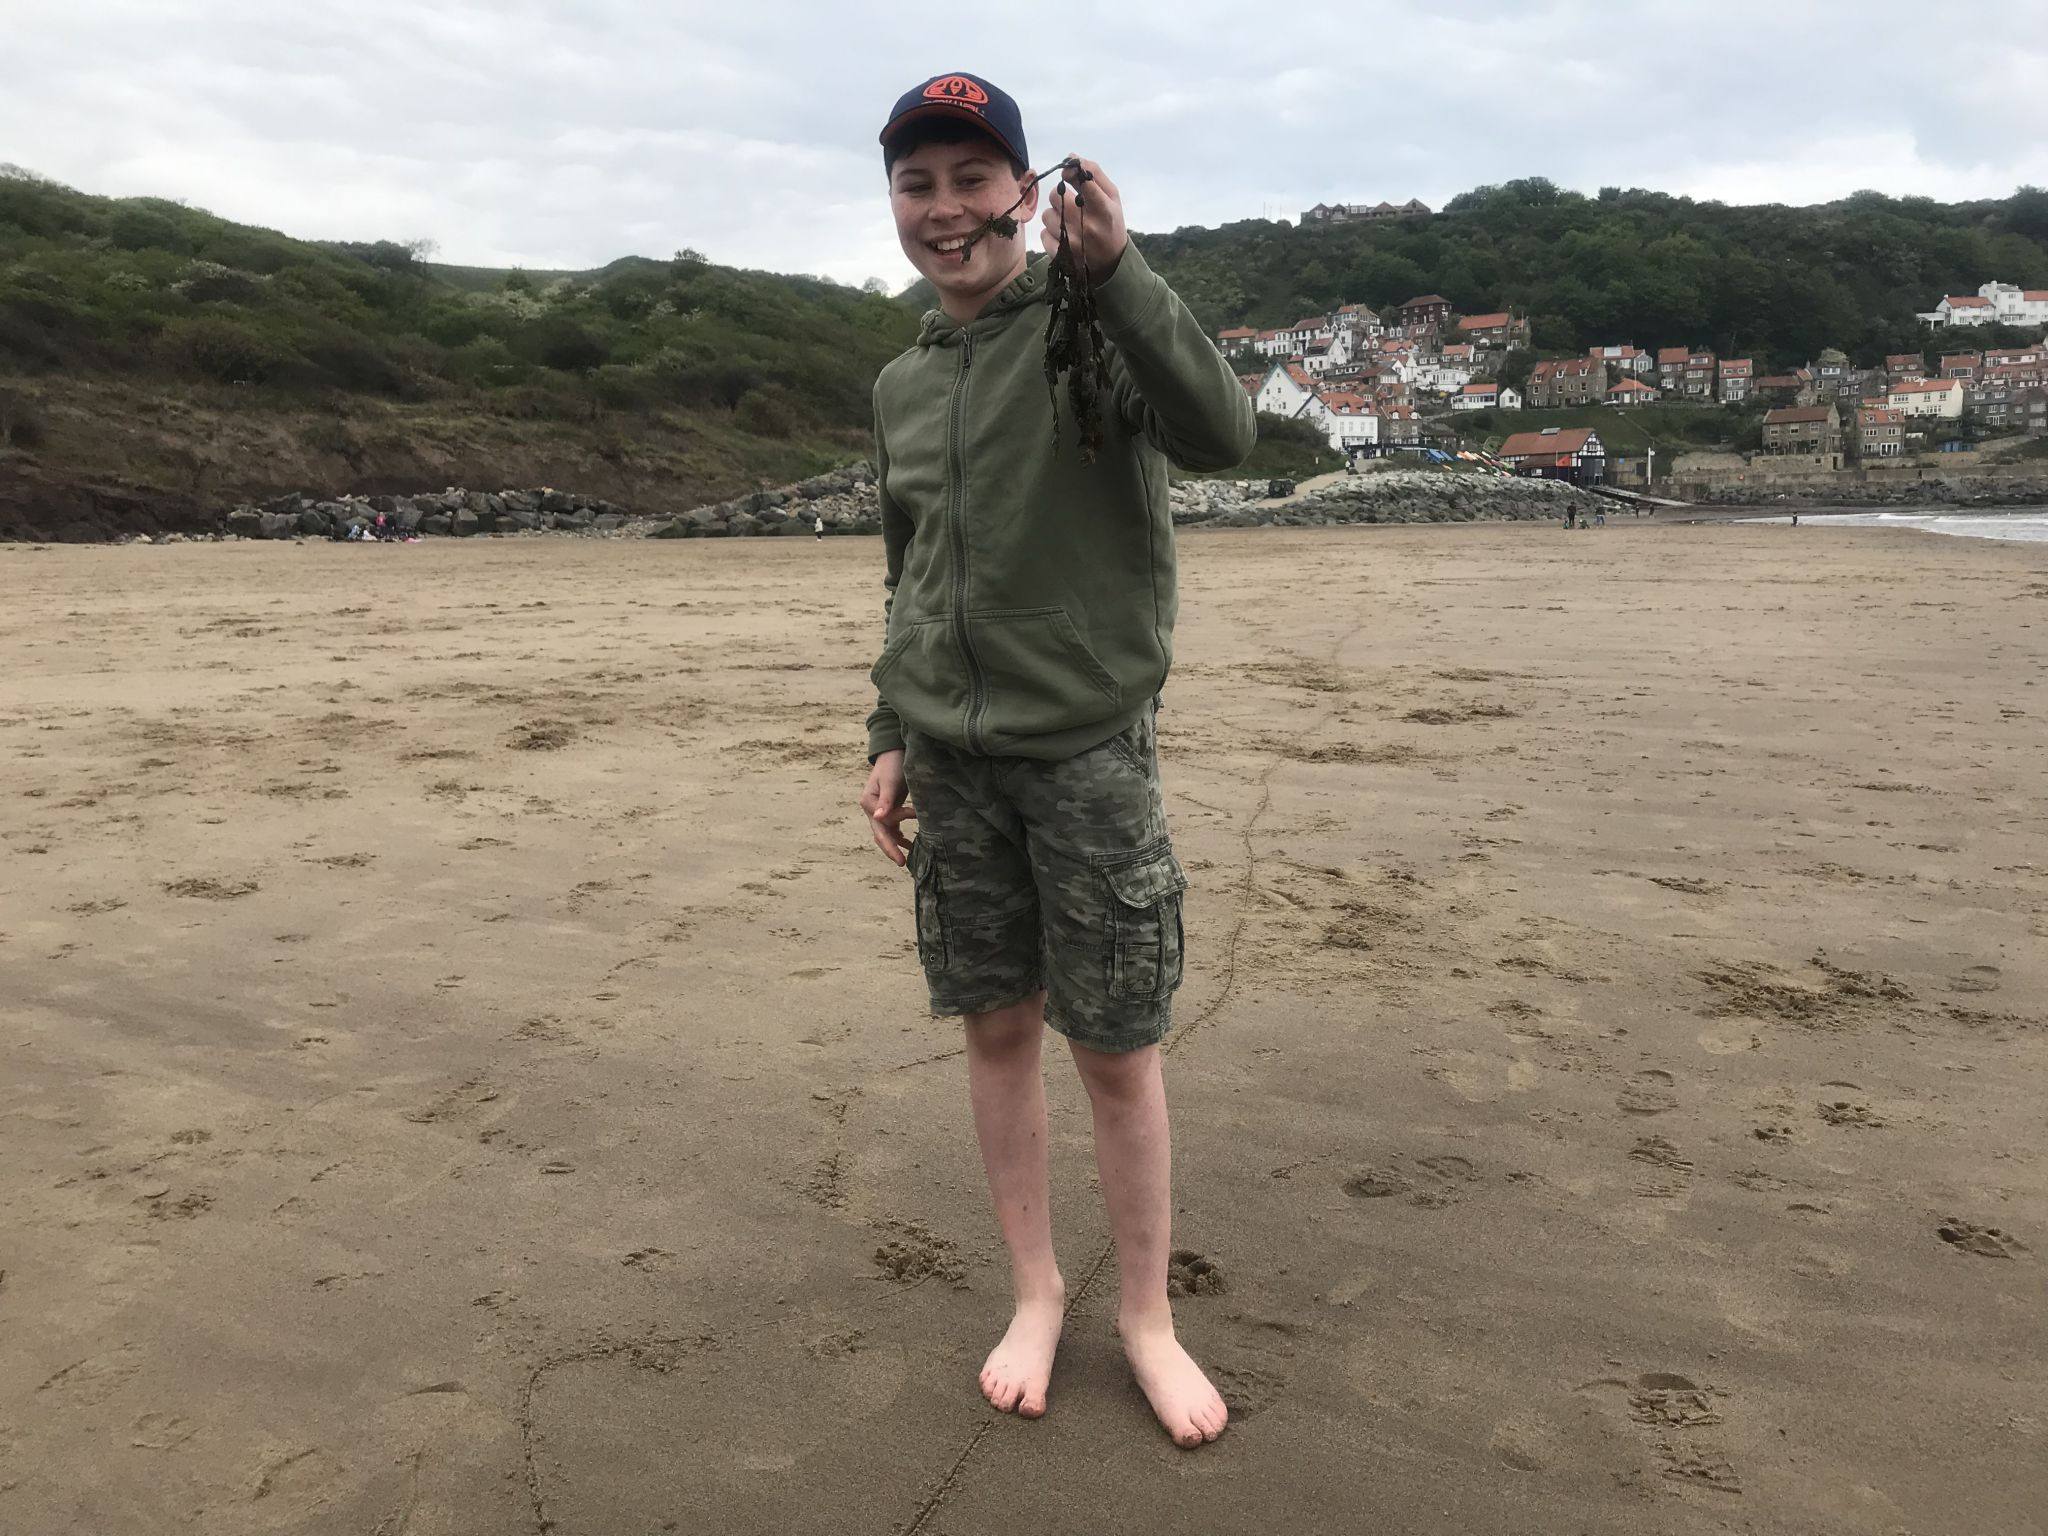 a young teen on the beach holding seaweed